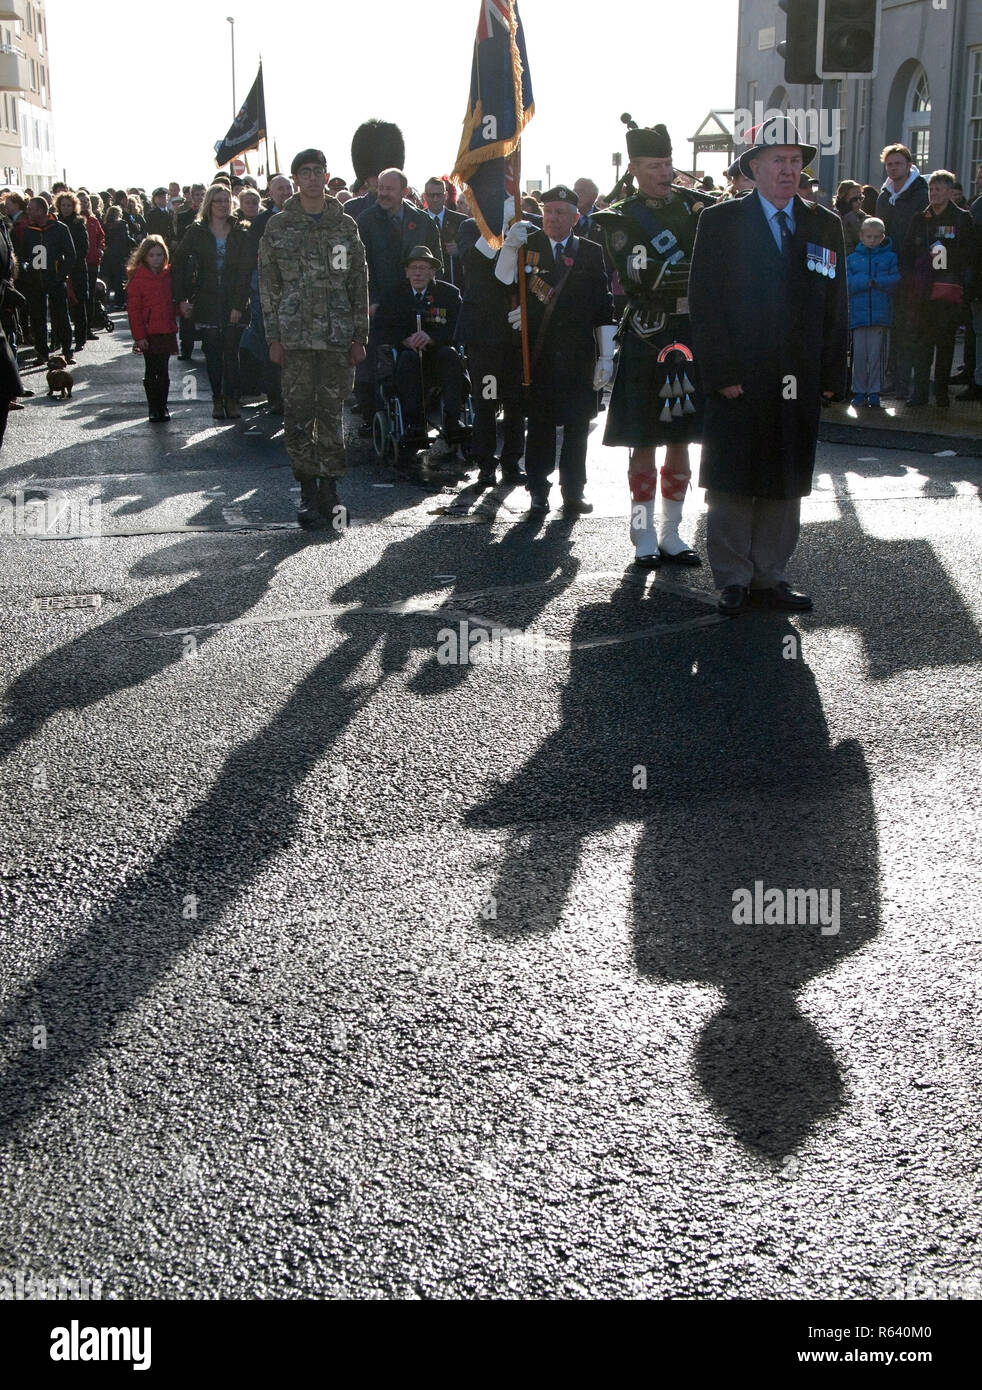 Standing to attention, Remembrance Day in the village of Rottingdean - Stock Image